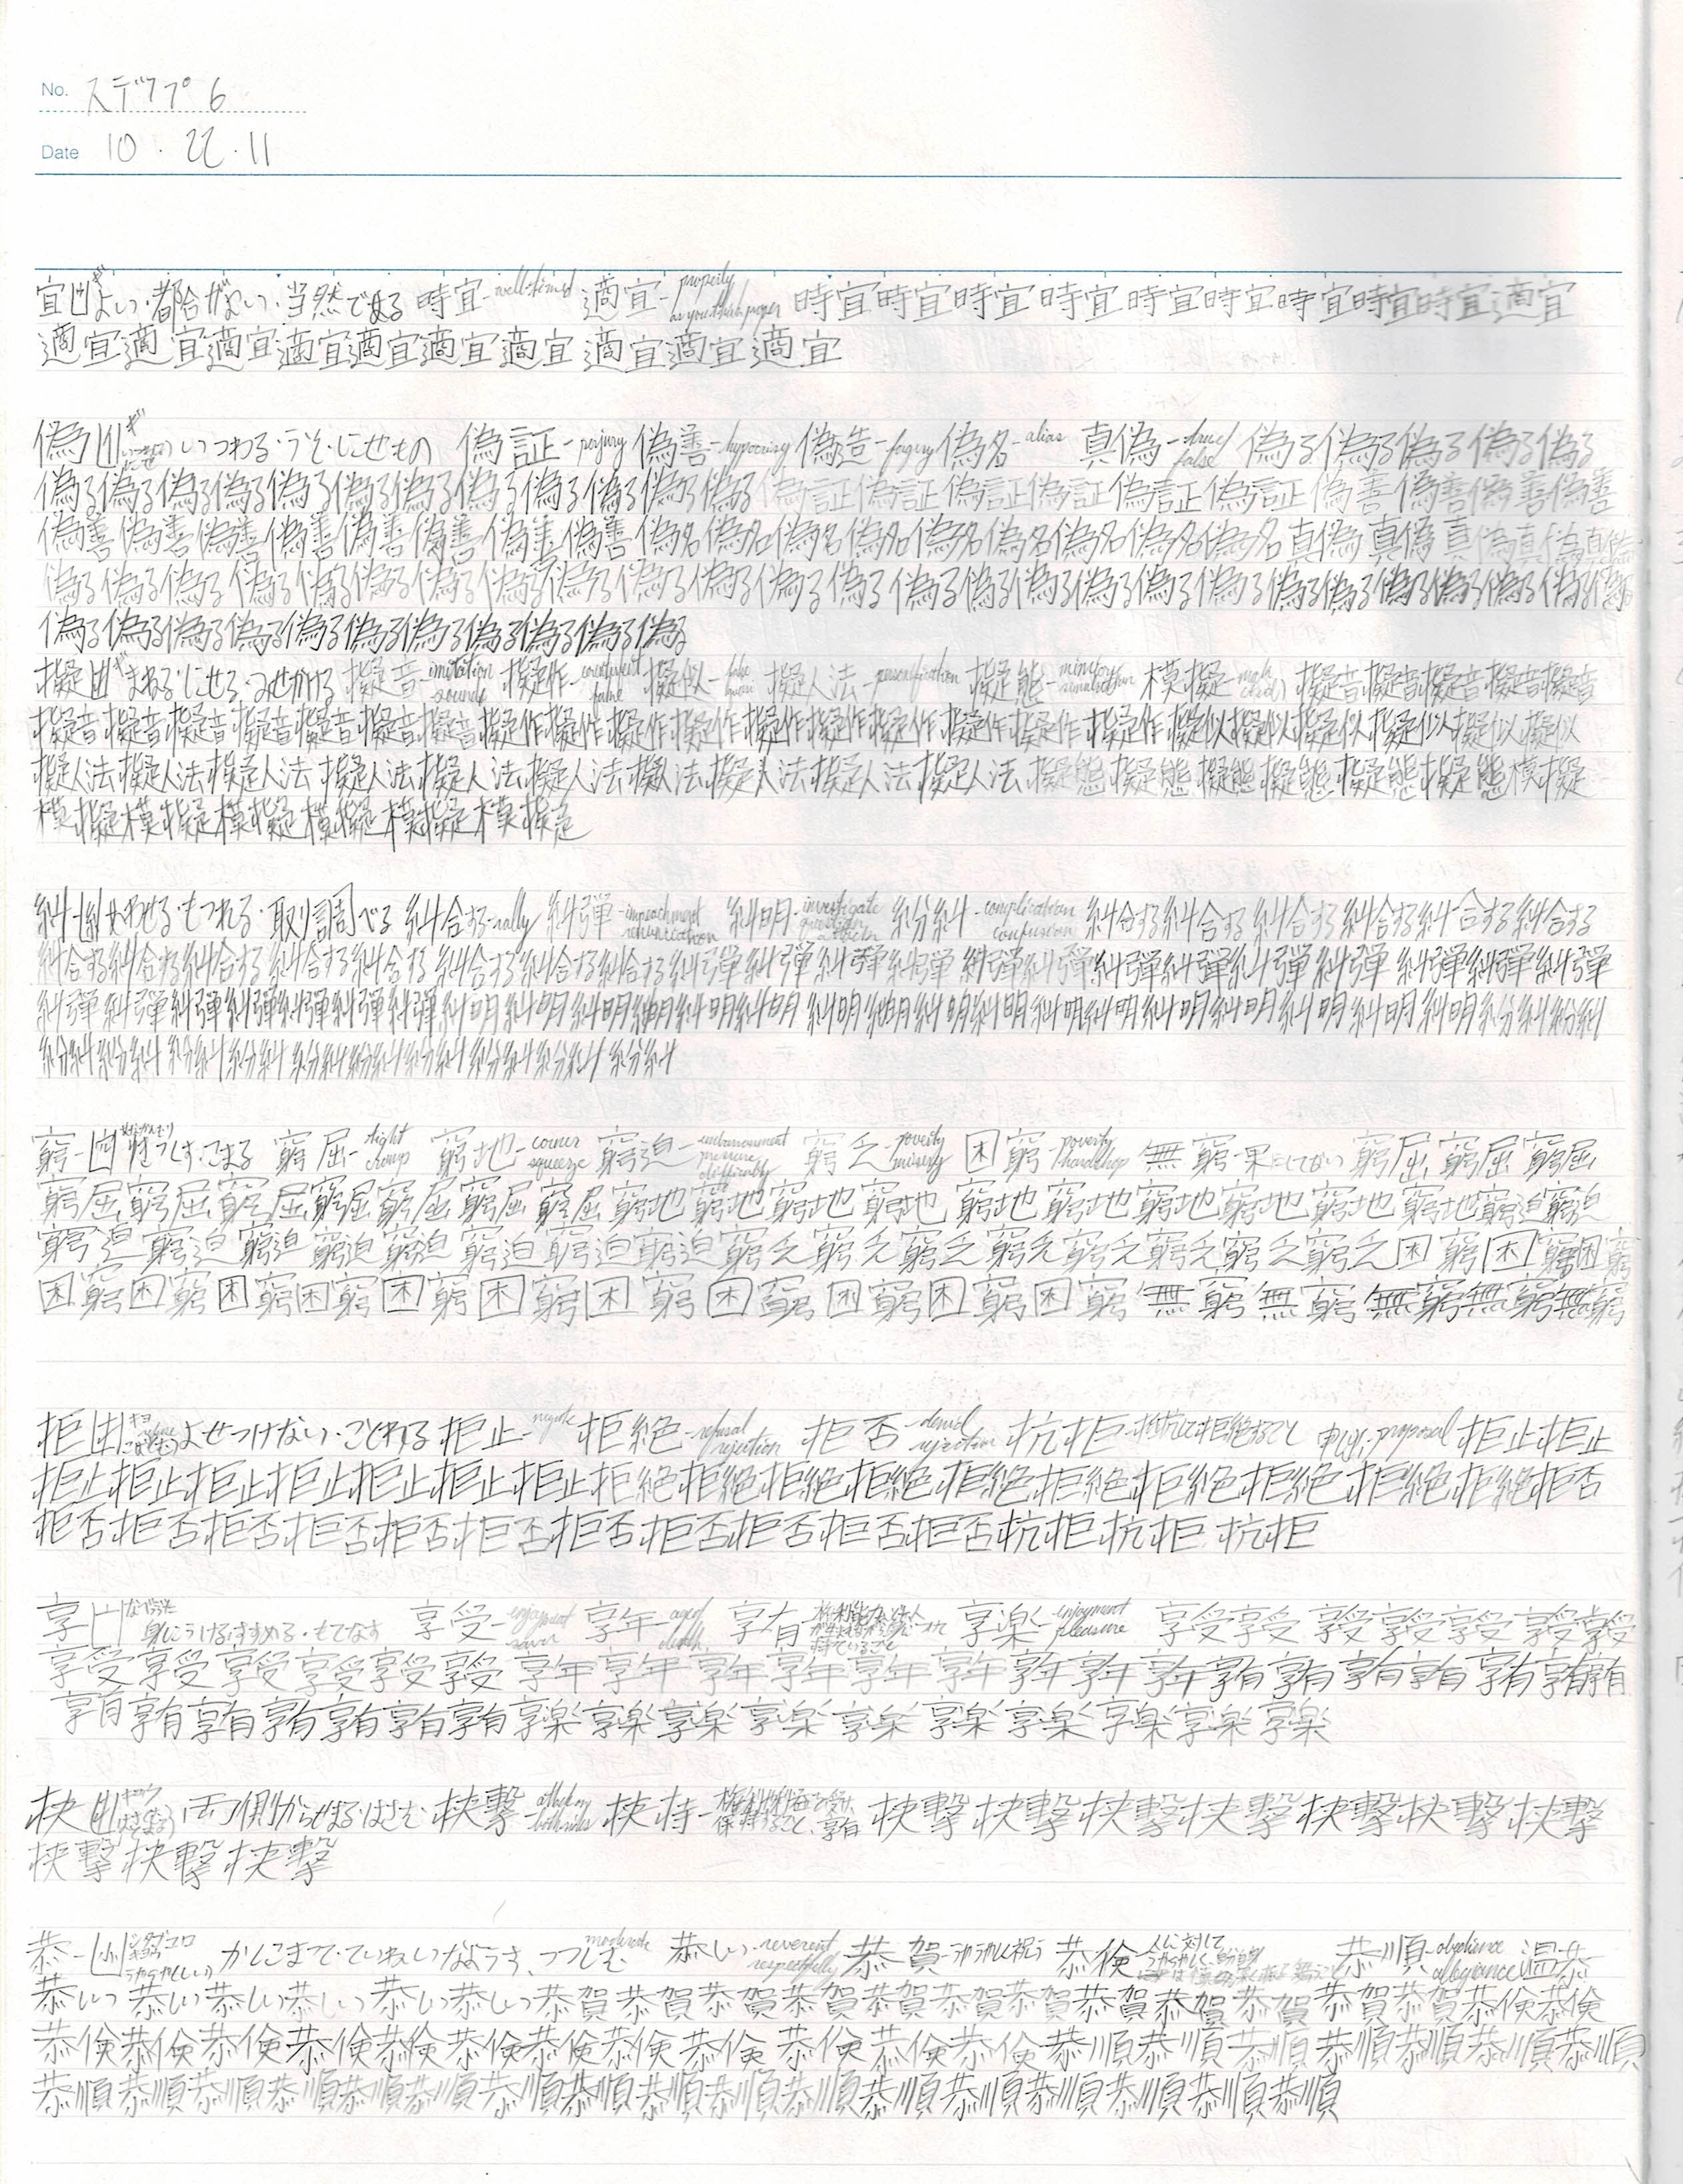 A page from the author's personal notebook where Chinese characters are written out in pencil multiple times.